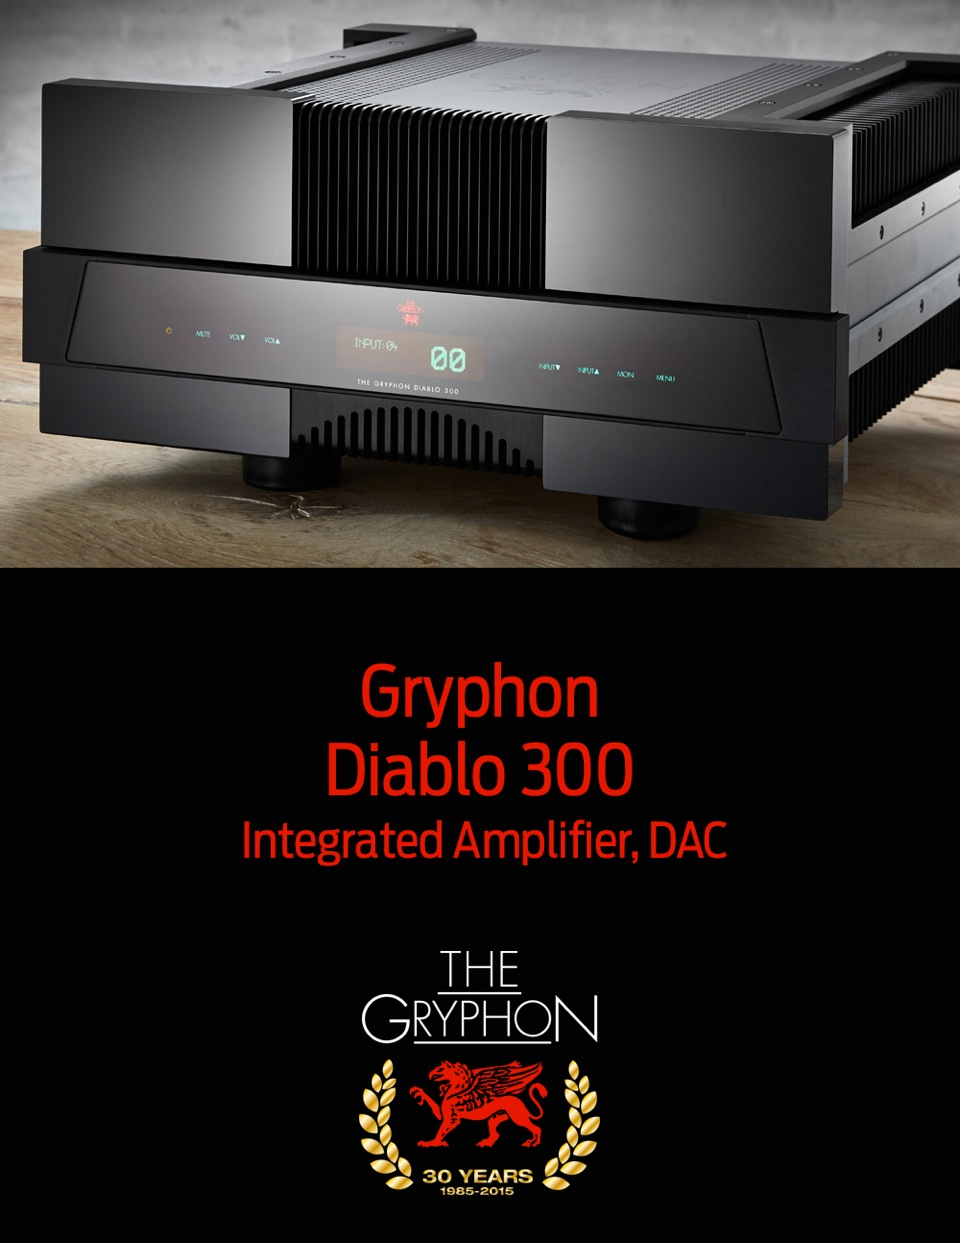 Gryphon Back Cover Mephisto (2)